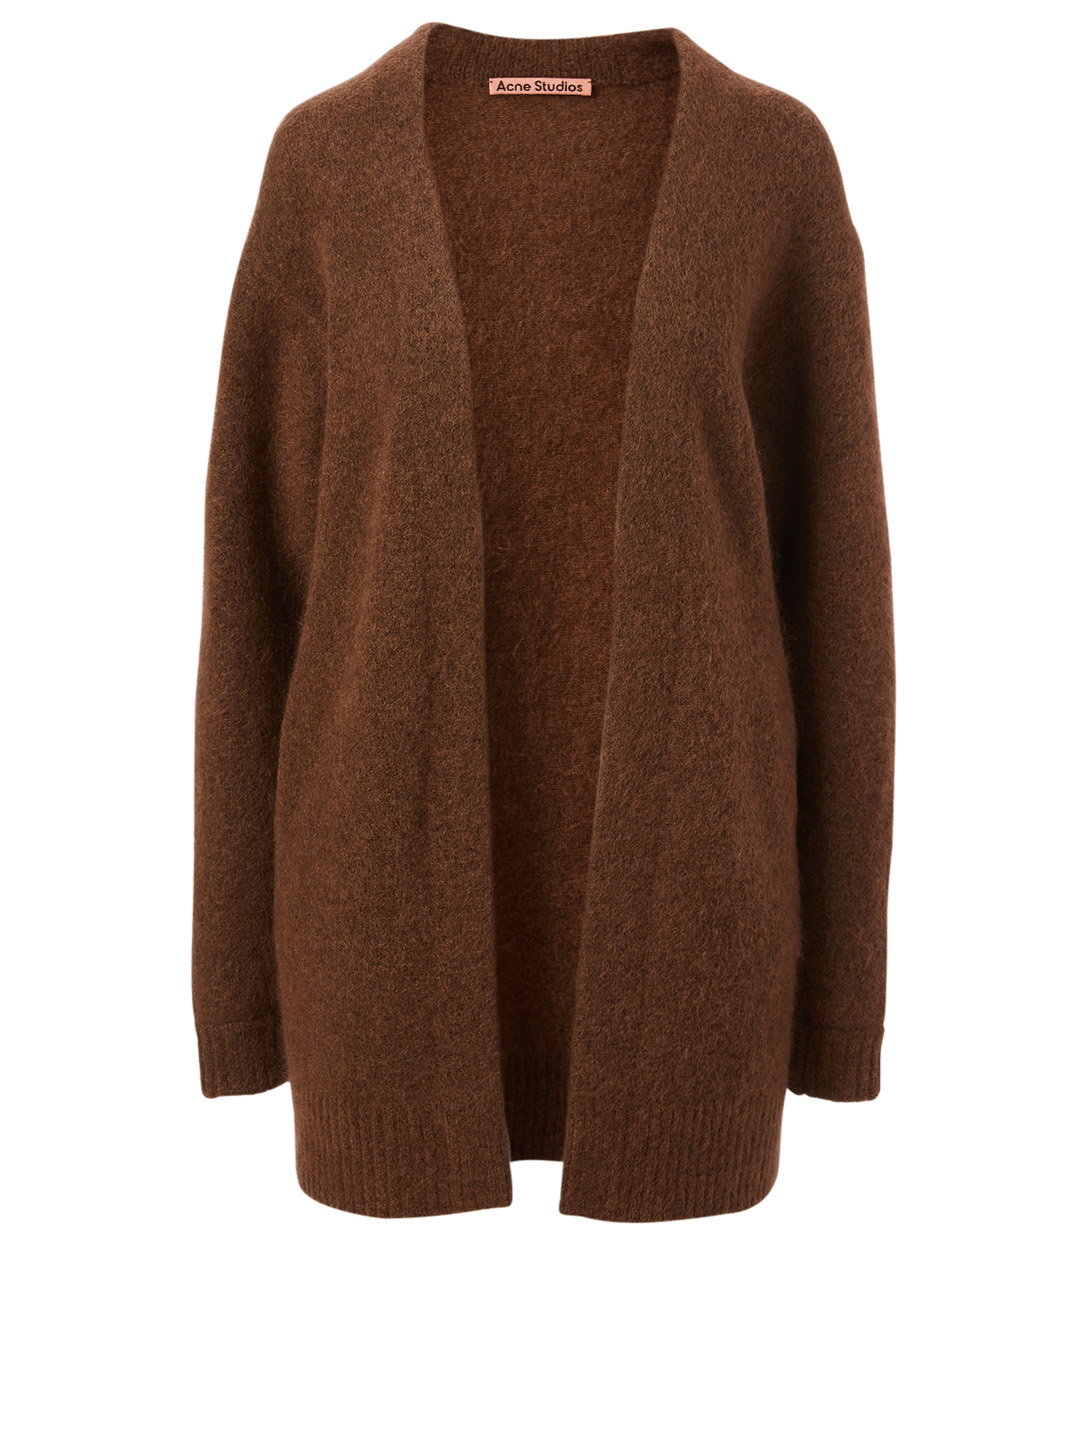 ACNE STUDIOS Wool And Mohair Cardigan Women's Brown